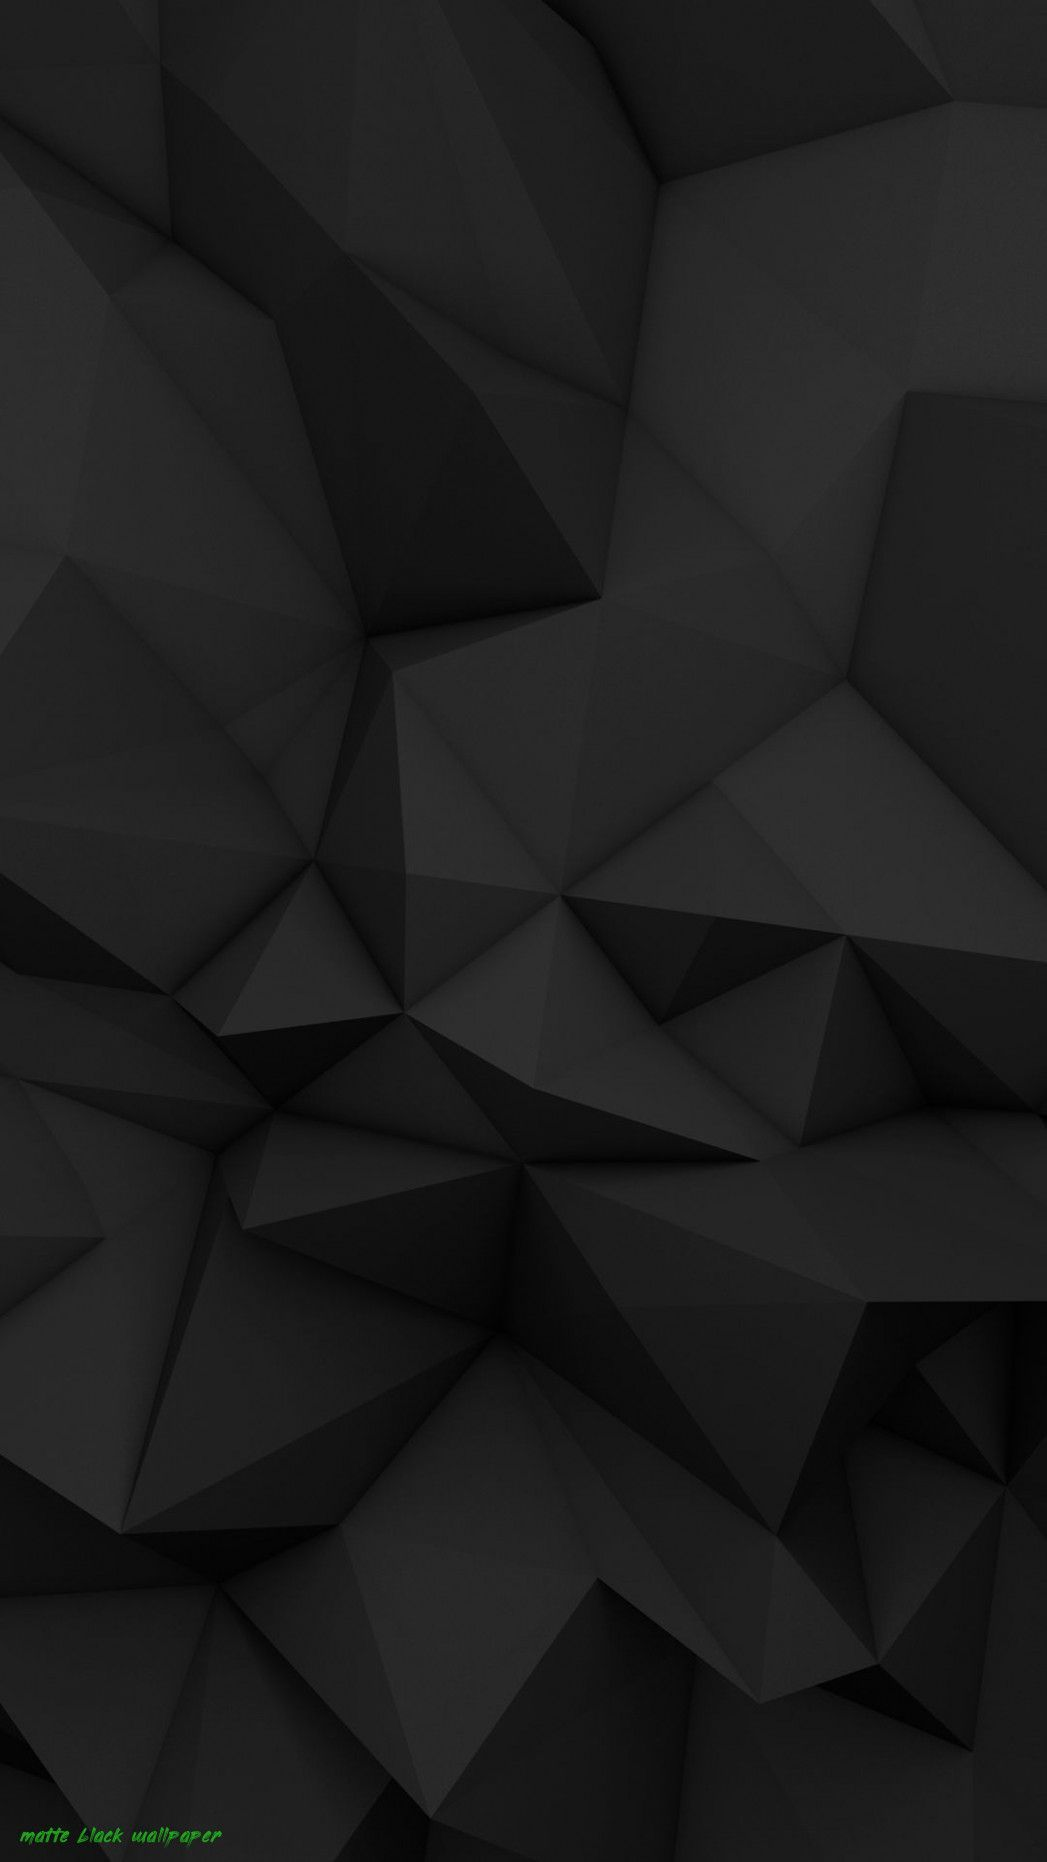 11 Things That You Never Expect On Matte Black Wallpaper Matte Black Wallpaper Black Exp Black Wallpaper Black Wallpaper Iphone Iphone 7 Wallpapers Black